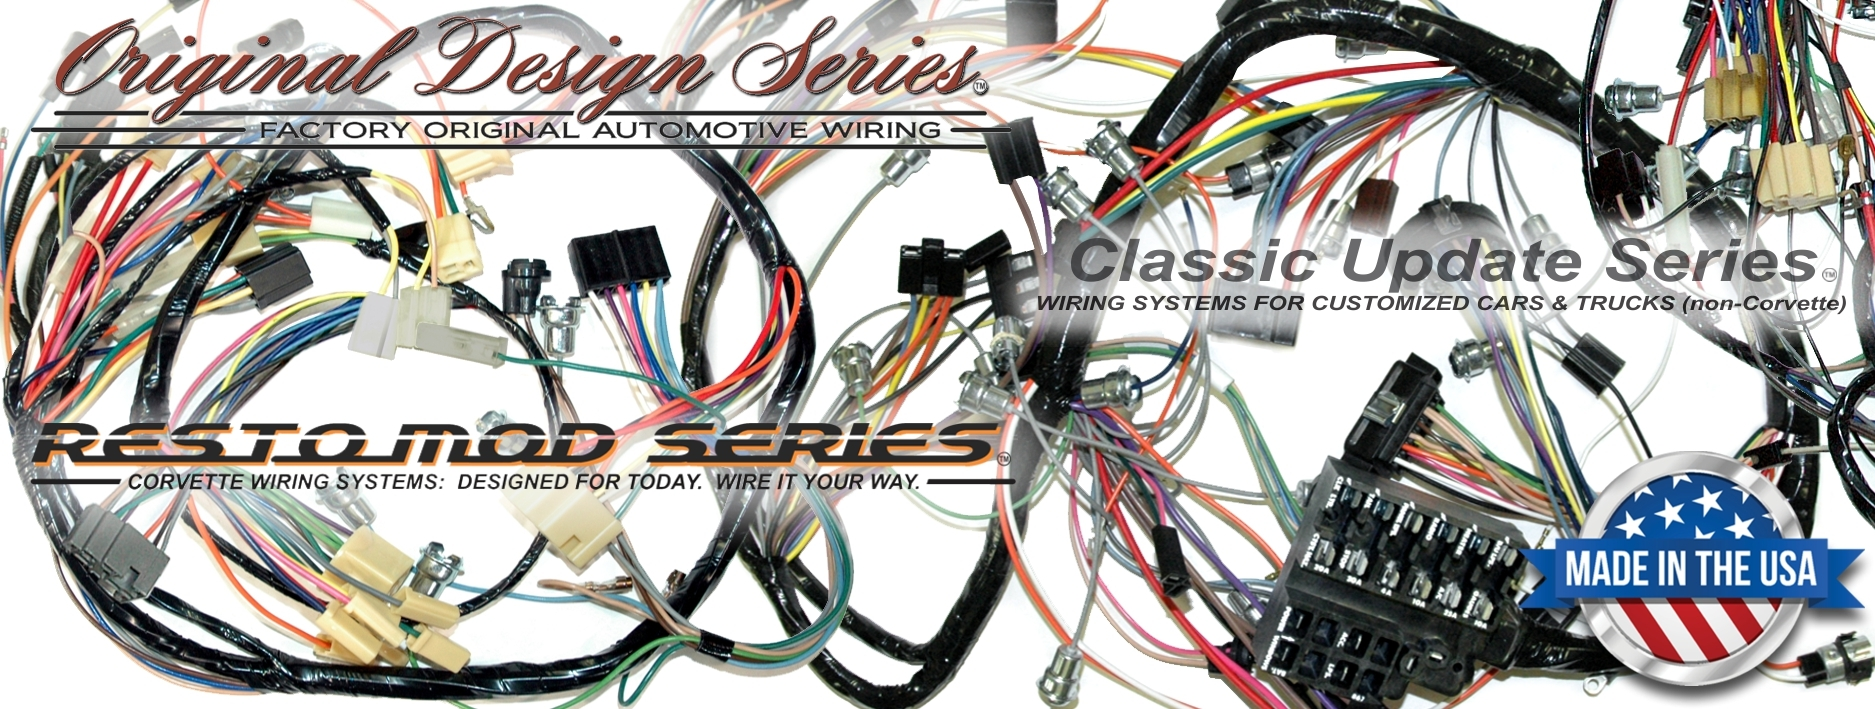 Exact Oem Reproduction Wiring Harnesses And Restomod Systems Chevy 350 Alternator With Amp Gauge Diagram 1986 Individual Complete